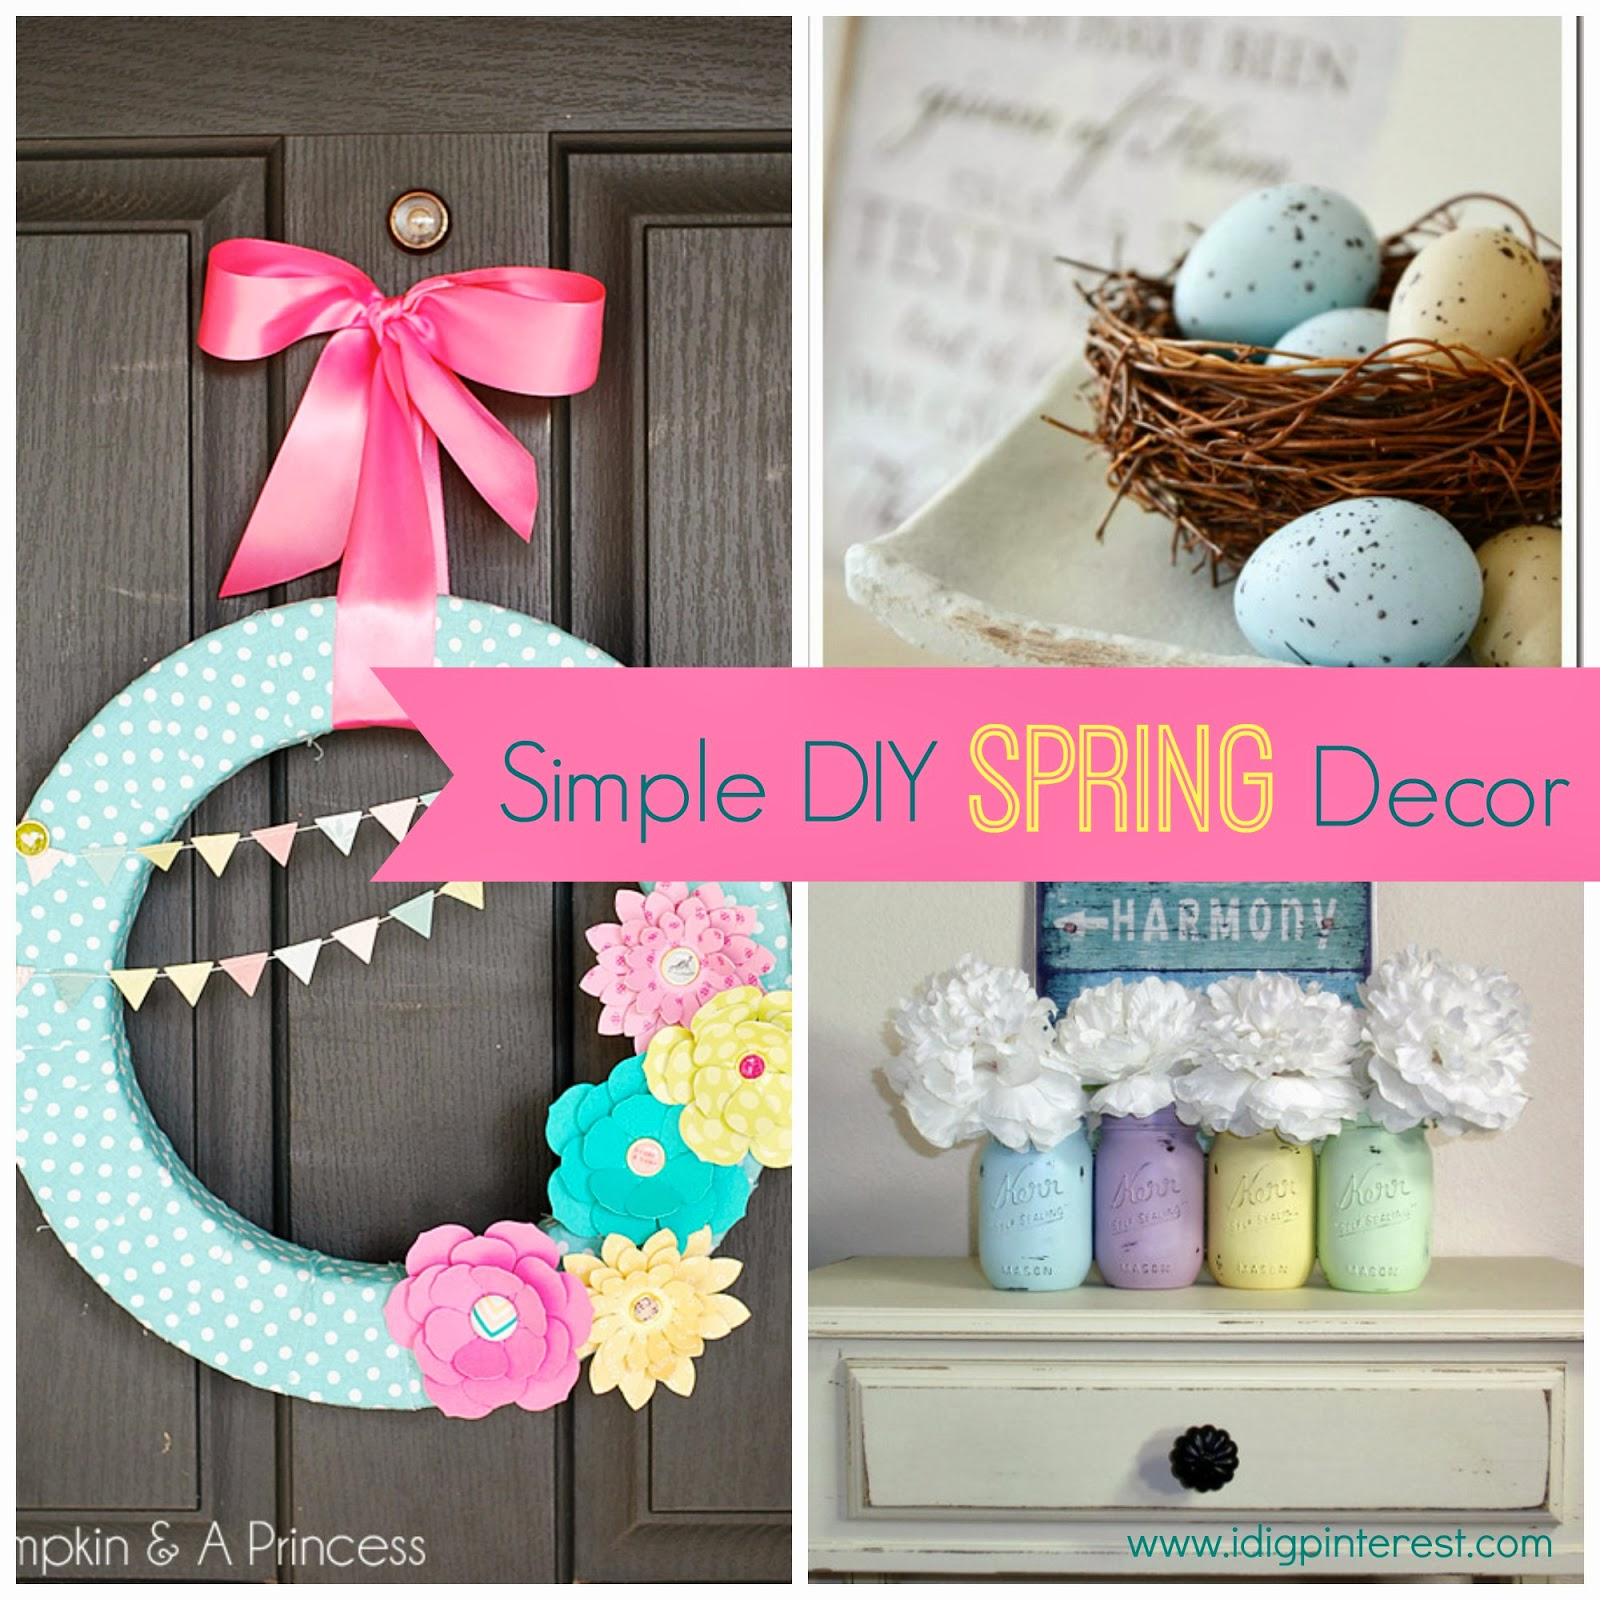 Pinterest easter home decor photo album 29 creative diy easter decoration ideas interesting Diy home decor crafts pinterest